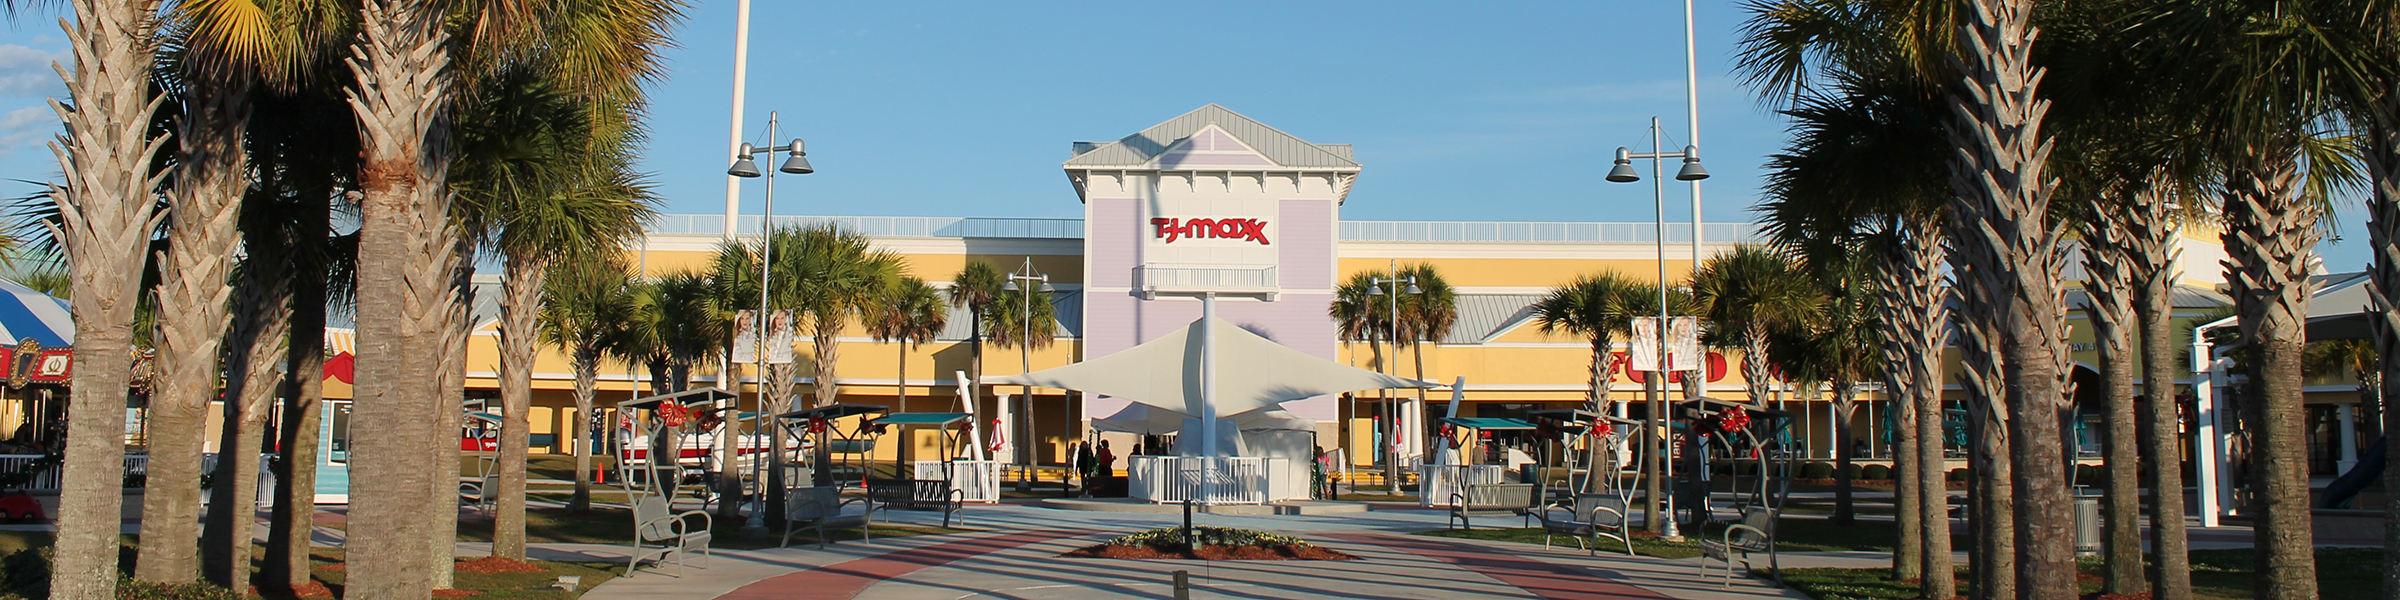 Tanger Outlets, Foley, Alabama, shopping, outlets, mall